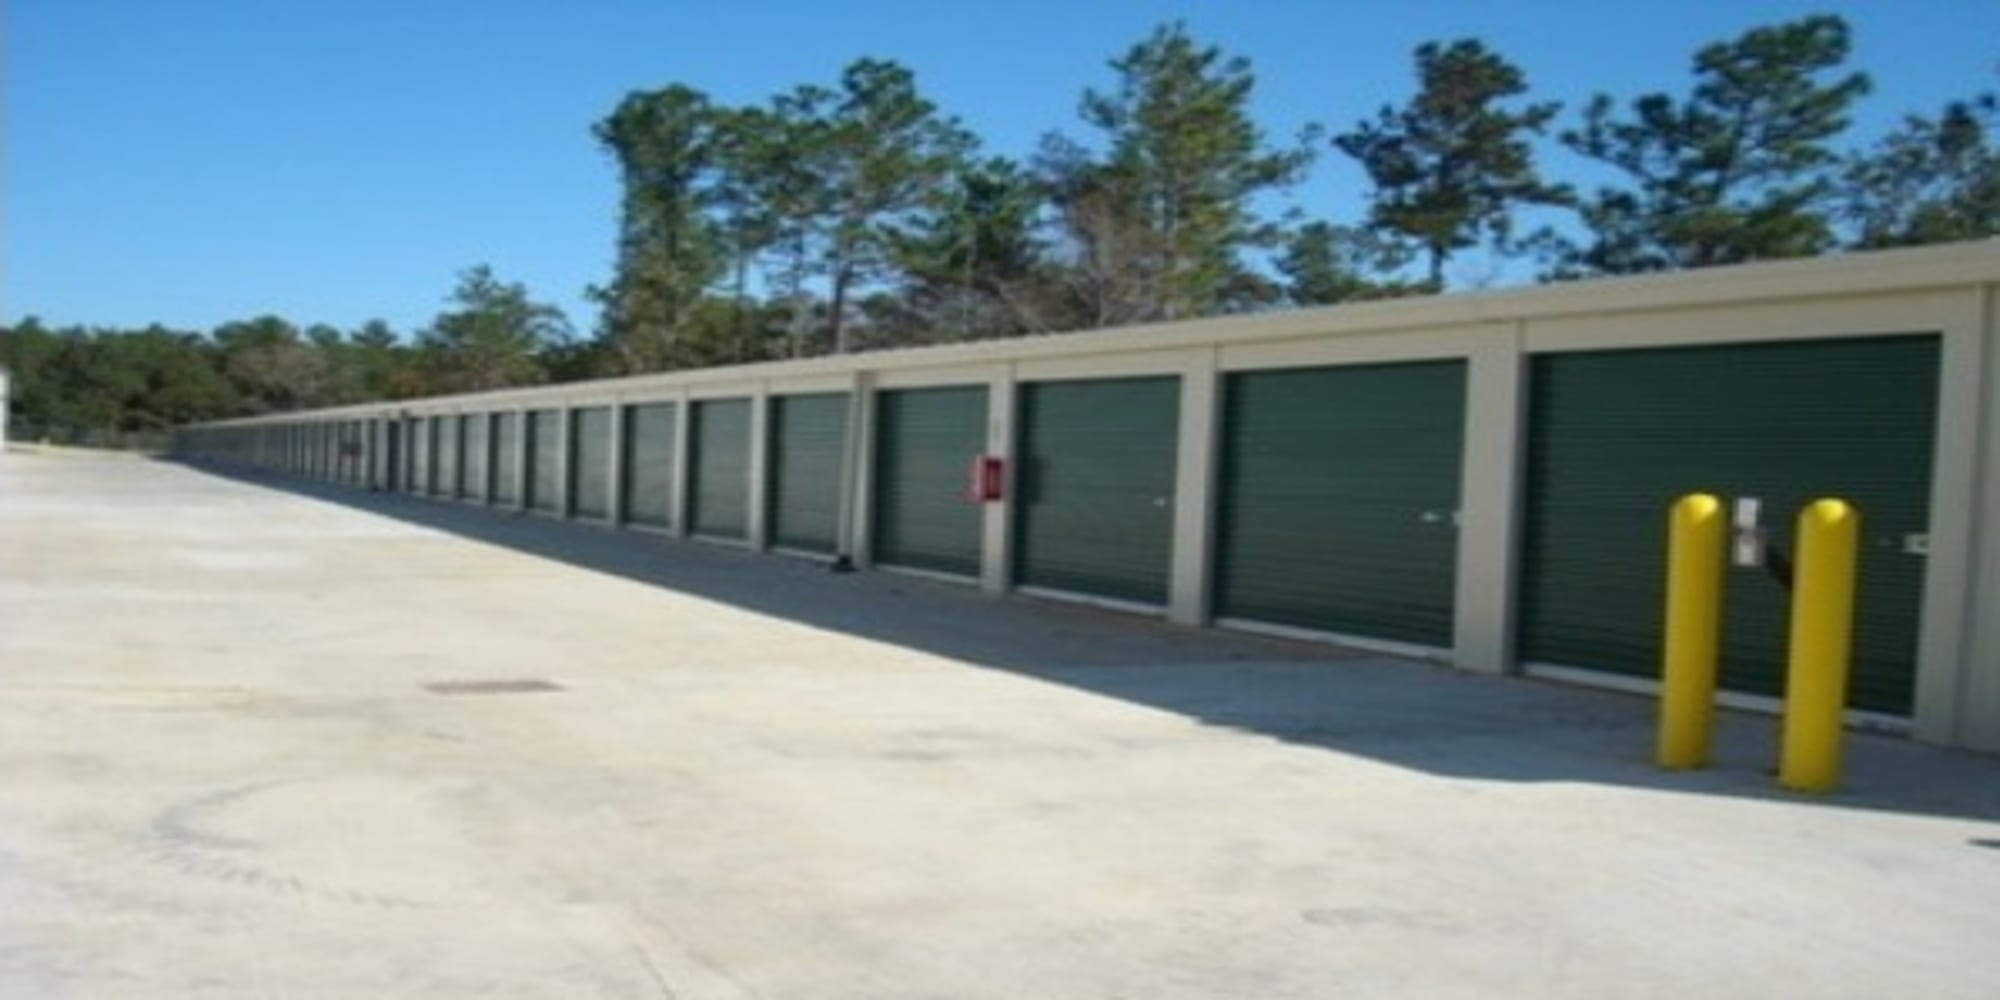 Temperature-controlled units at A Storage of Daphne in Daphne, Alabama